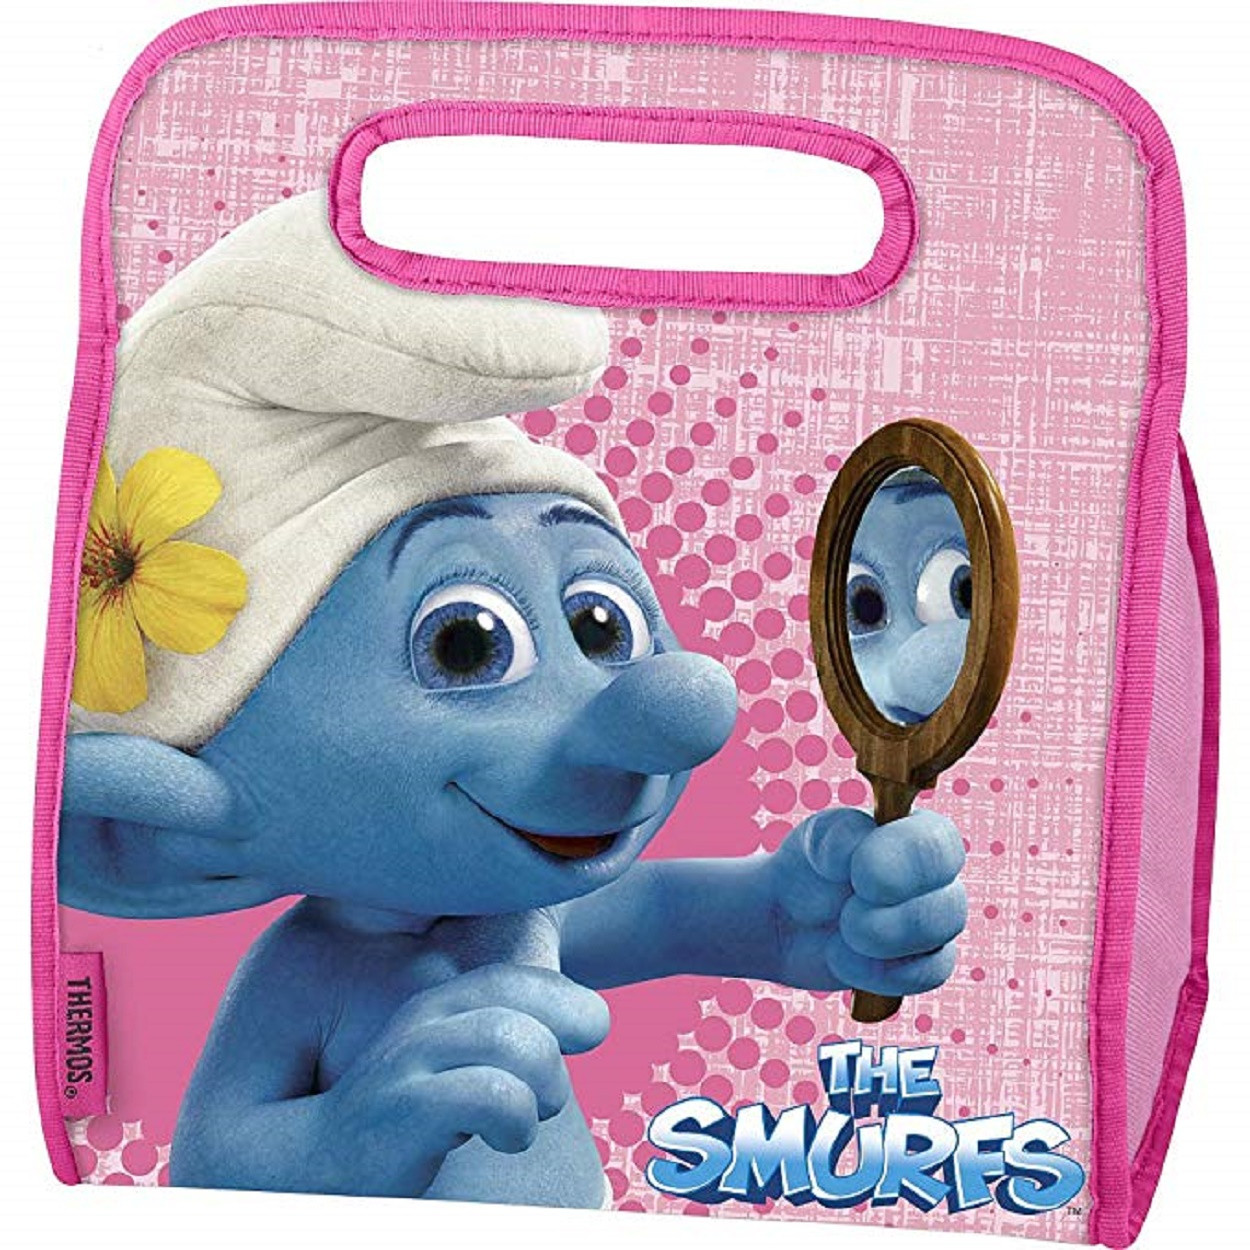 Lunch Box - Smurfs - Insulated - Pink